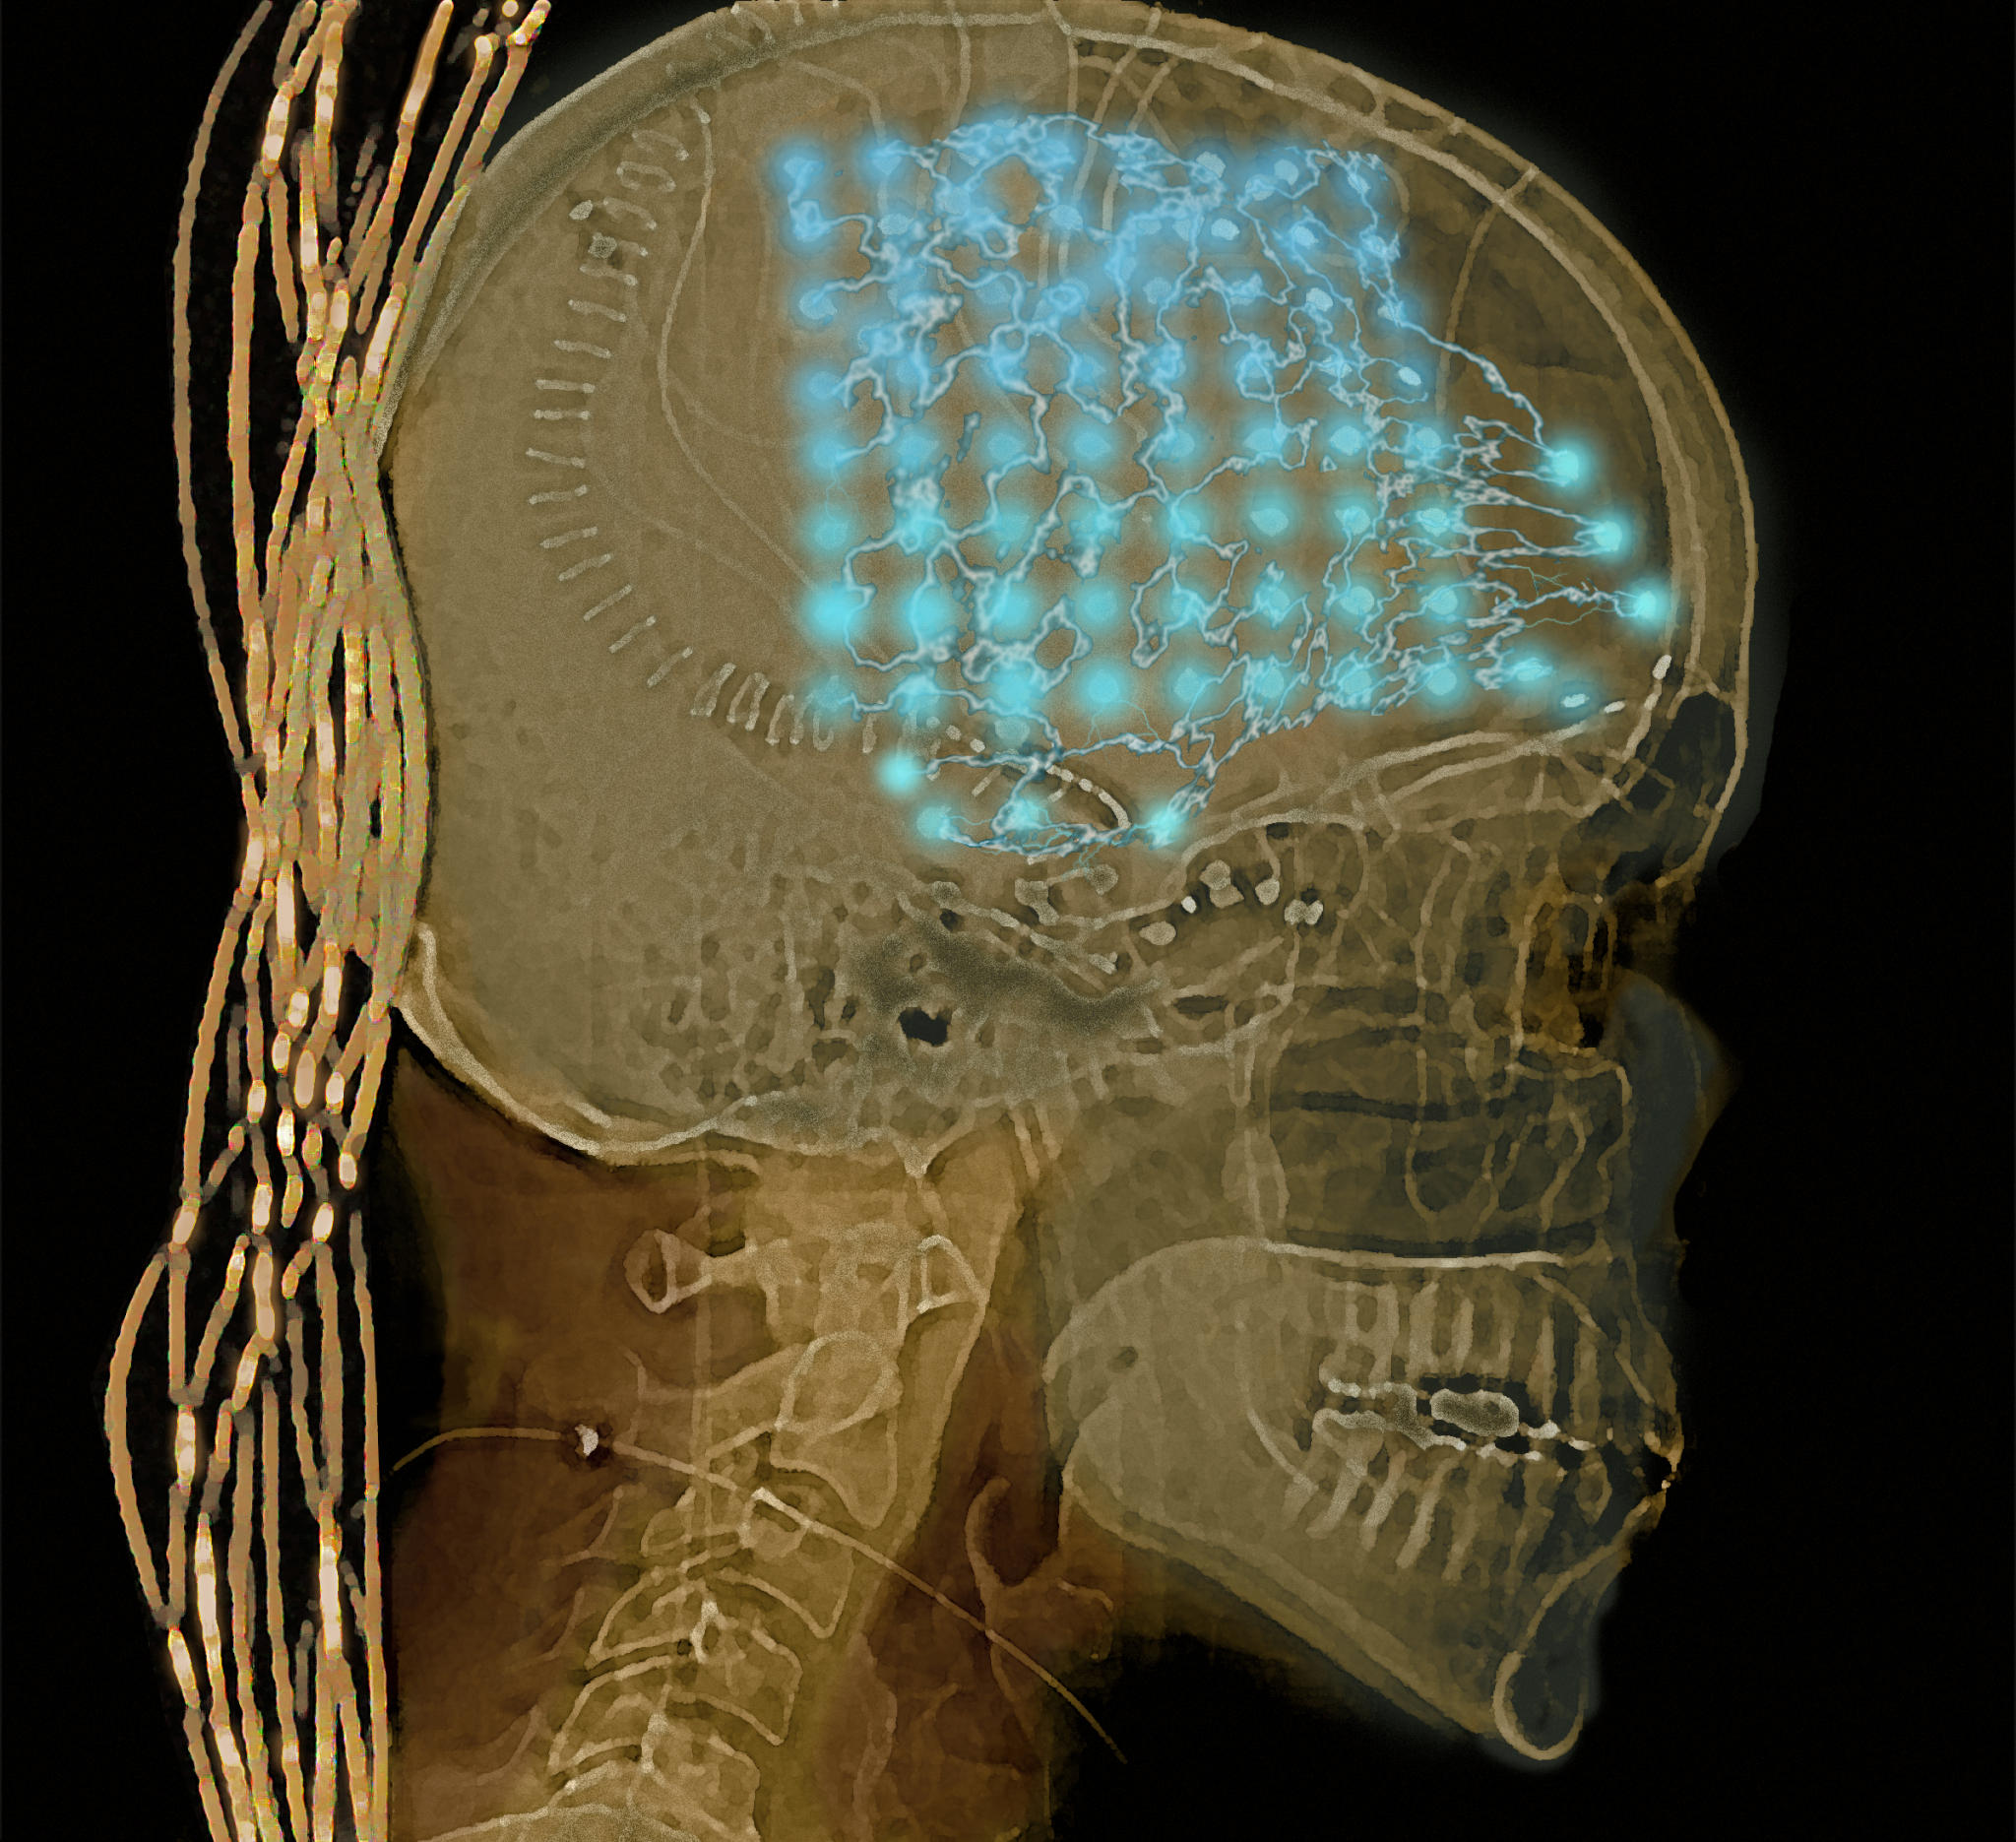 Epilepsy Research Leads To New Insights Into How Our ...